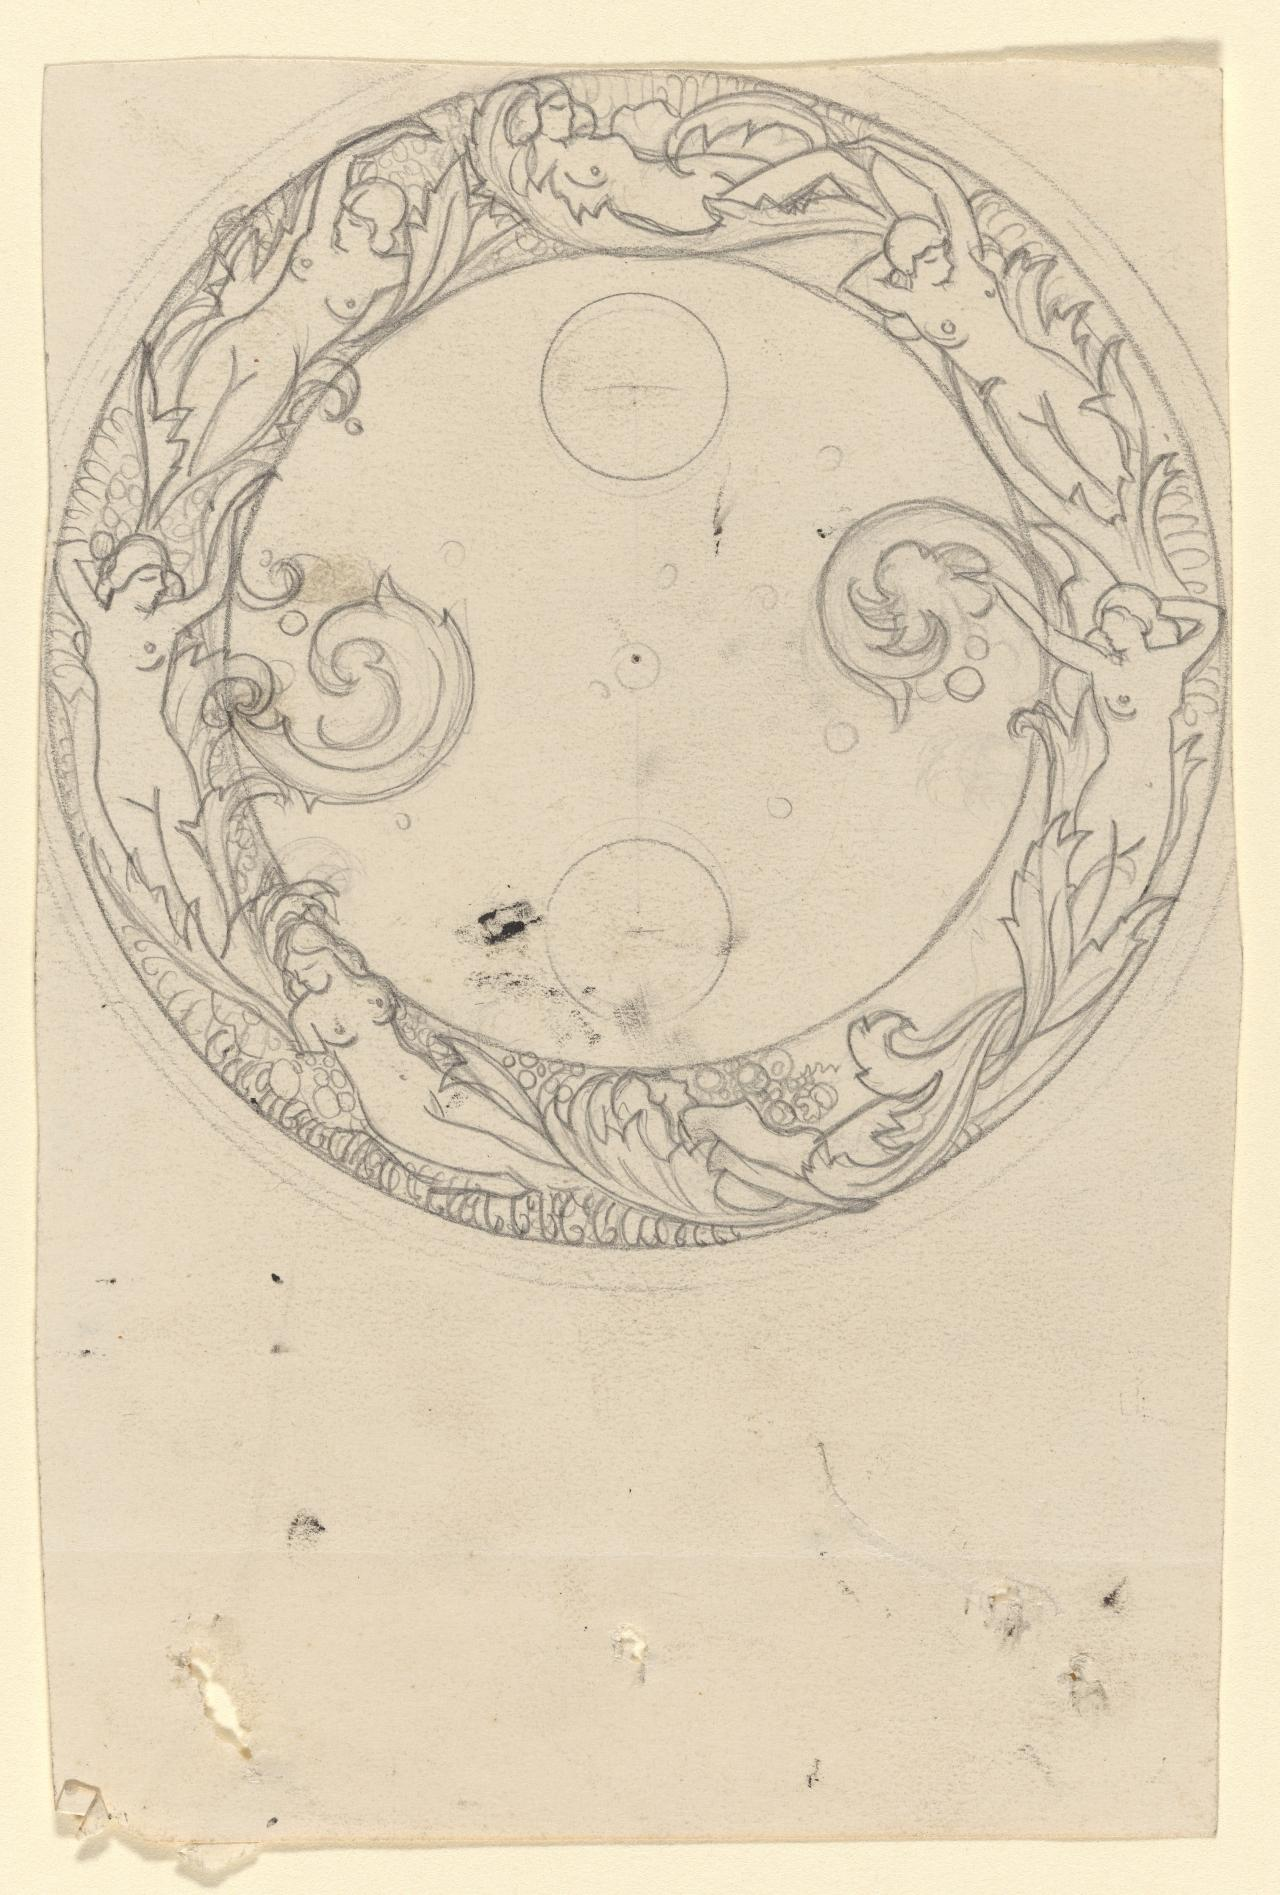 Design for the cover of a casket